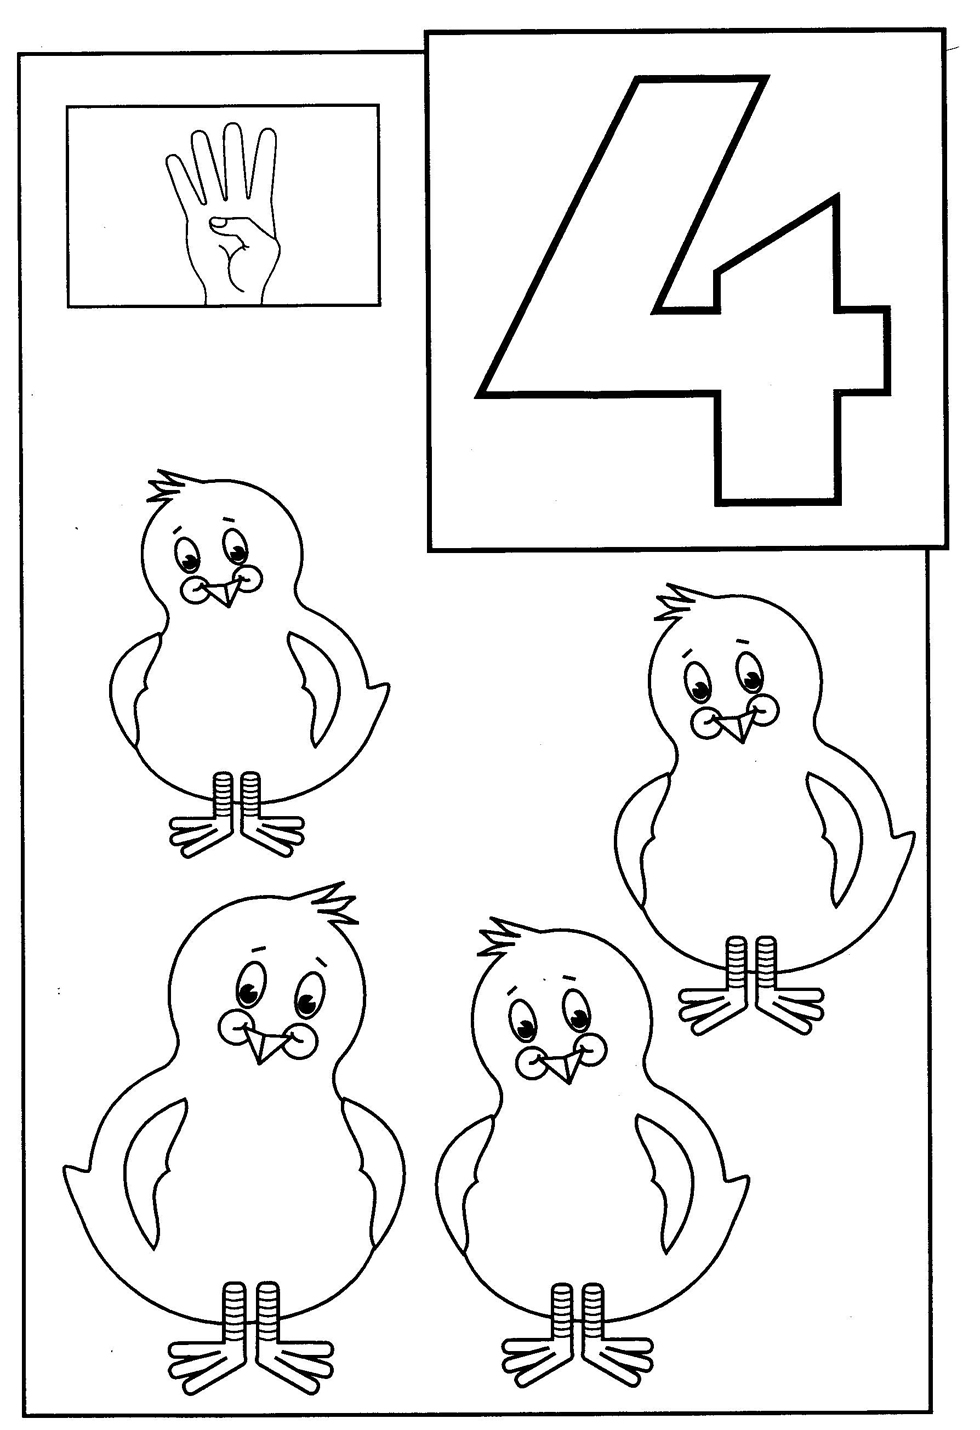 Toddler Coloring Pages | number coloring pages for toddlers